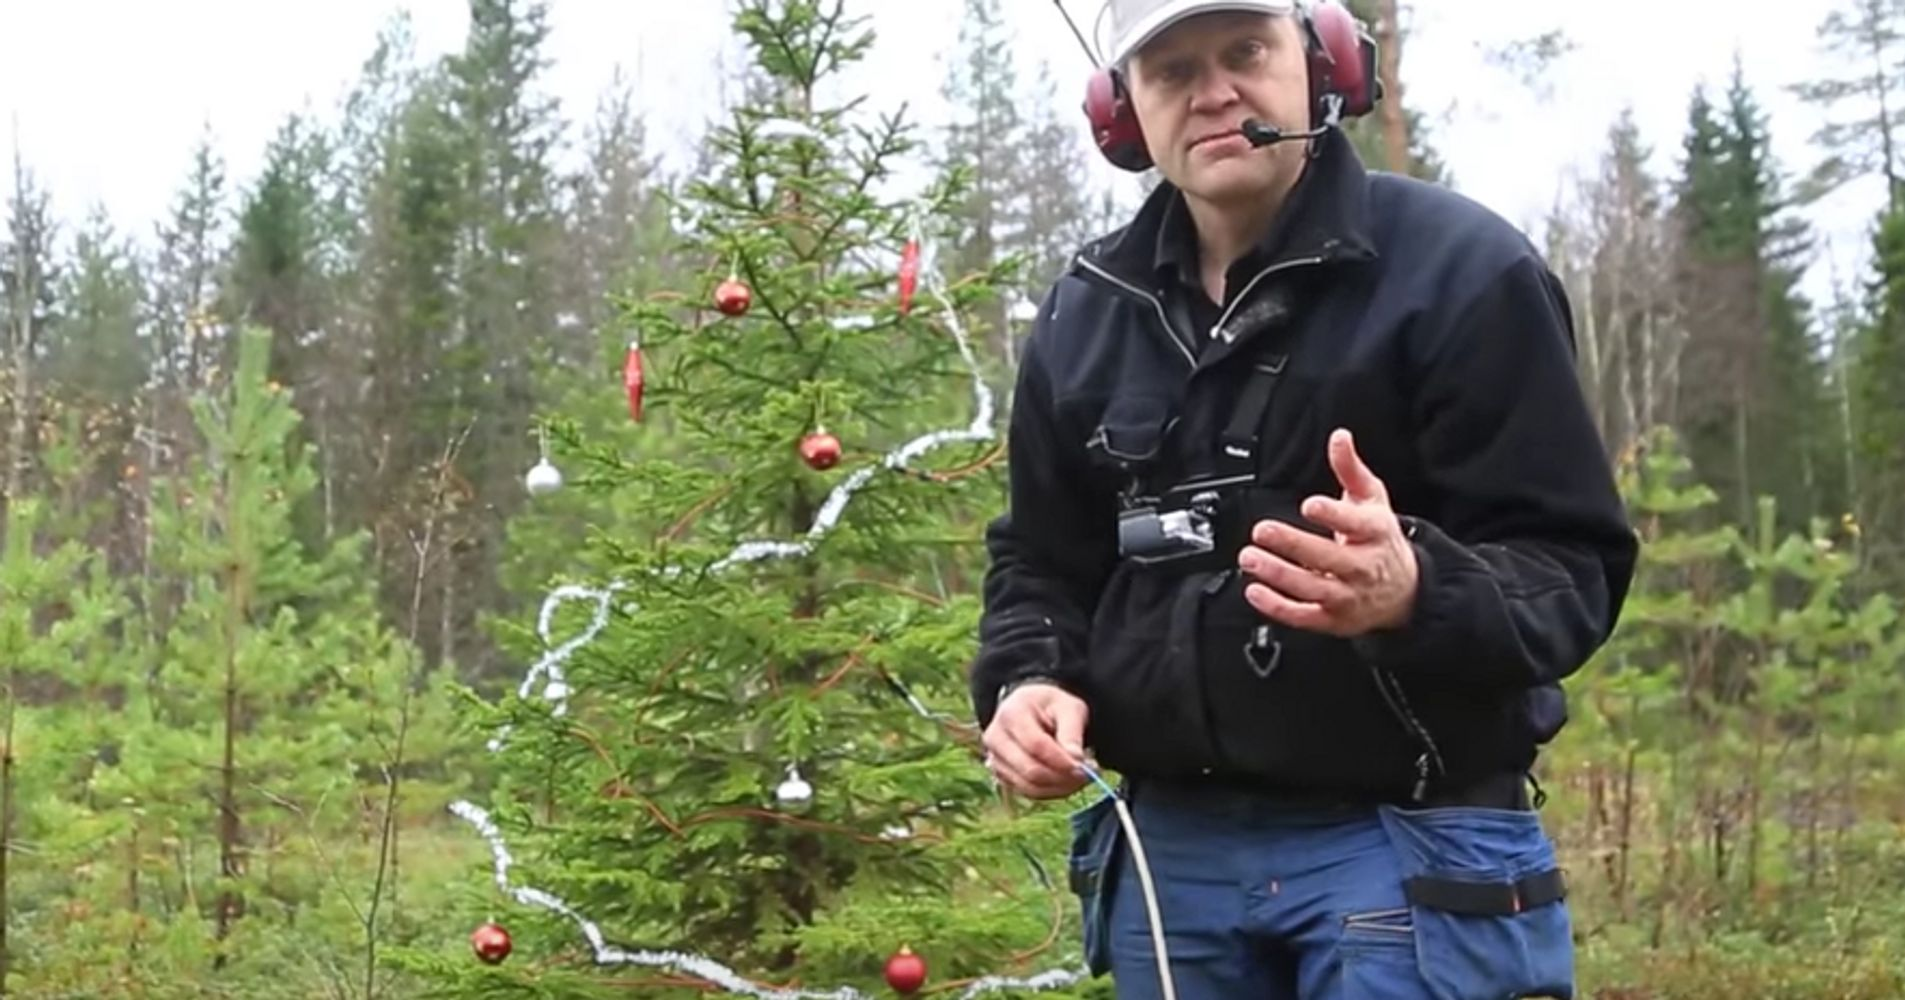 Watch This Guy Dynamite A Christmas Tree Just In Time For